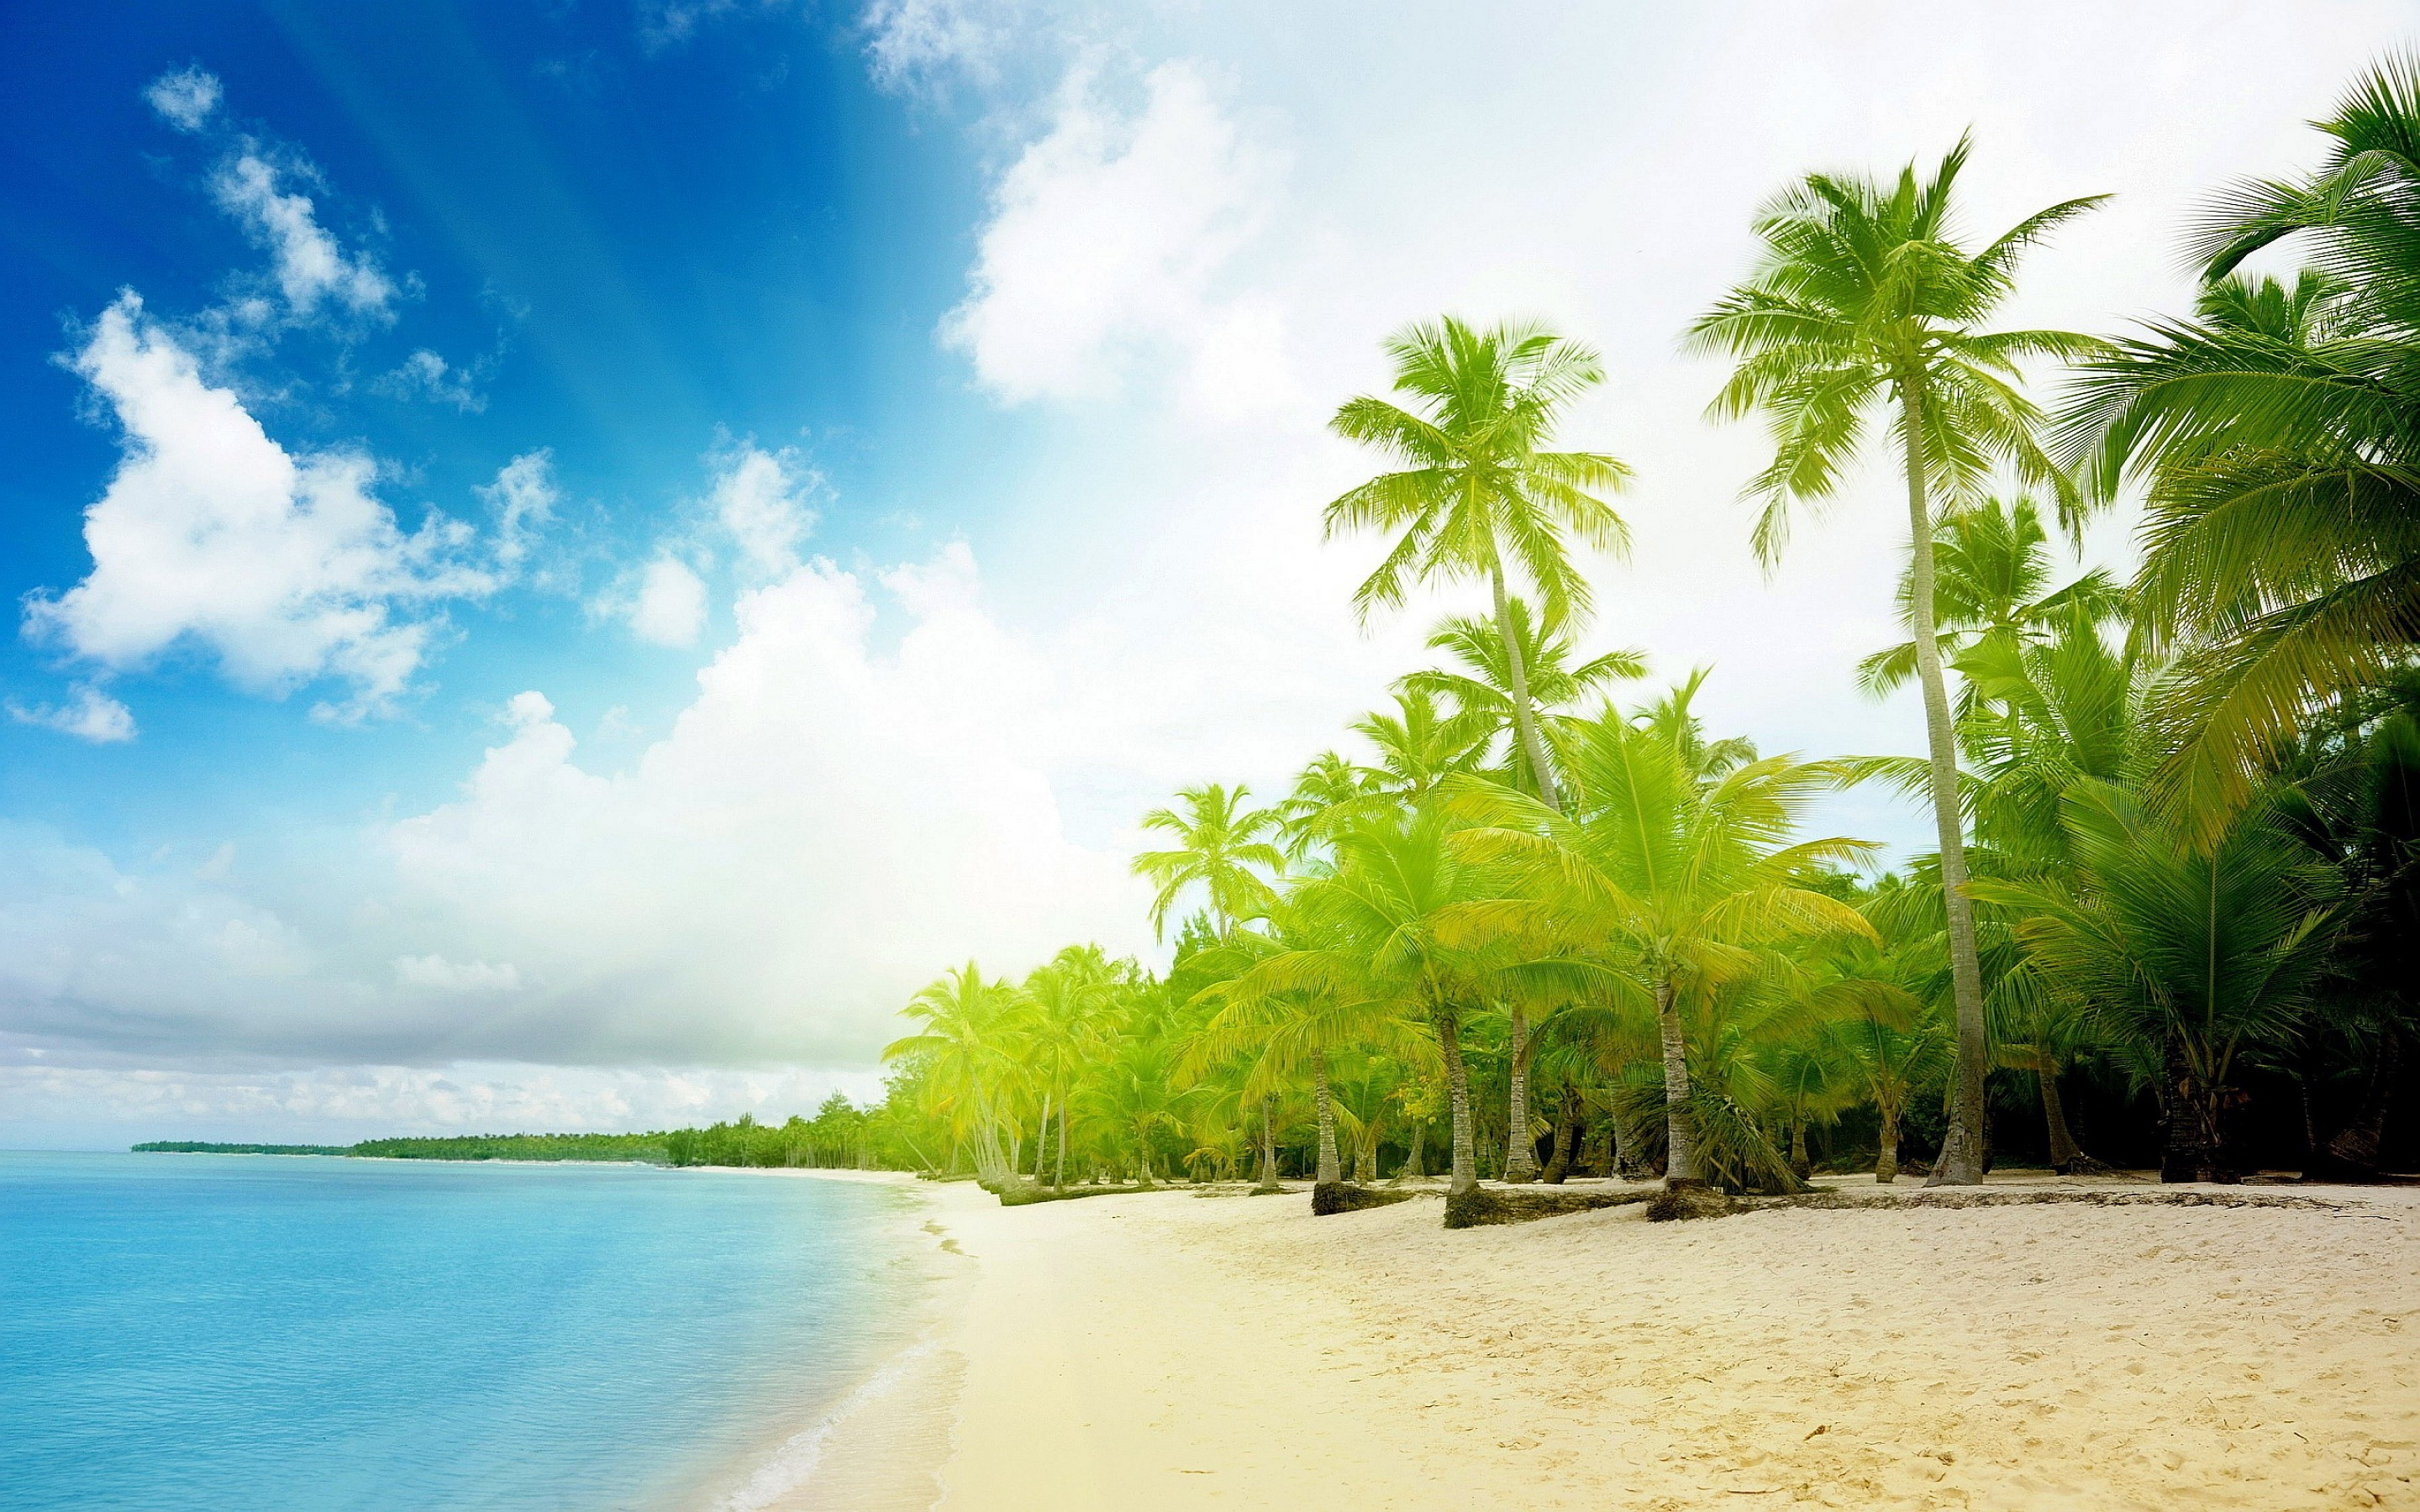 Beach Tropical Palm Trees HD Wallpaper in High Resolution at Nature 2880x1800